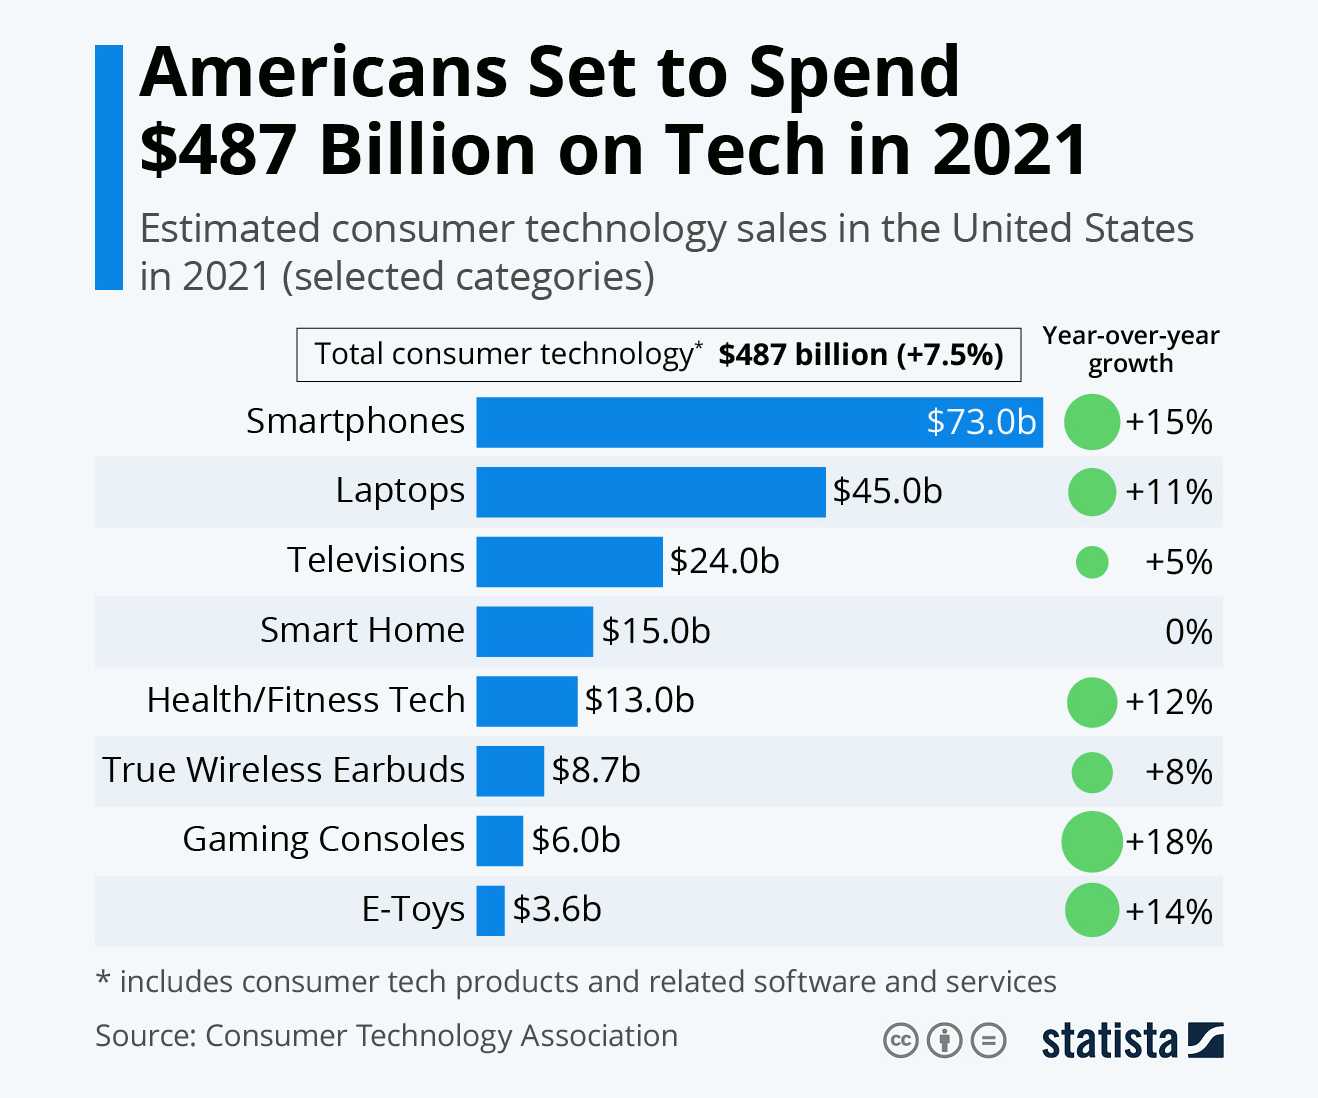 American Spending on Tech to Approach Half a Trillion Dollars in 2021